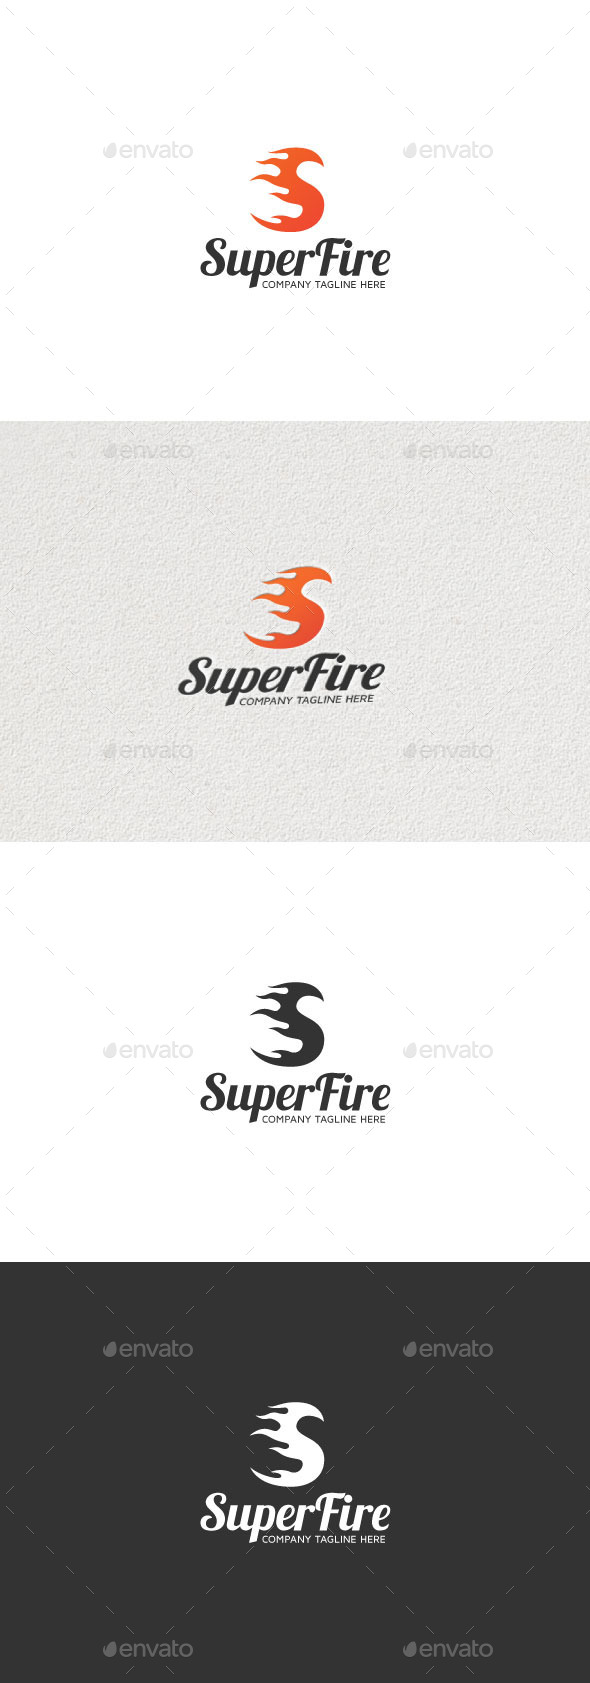 GraphicRiver Super Fire 8847427